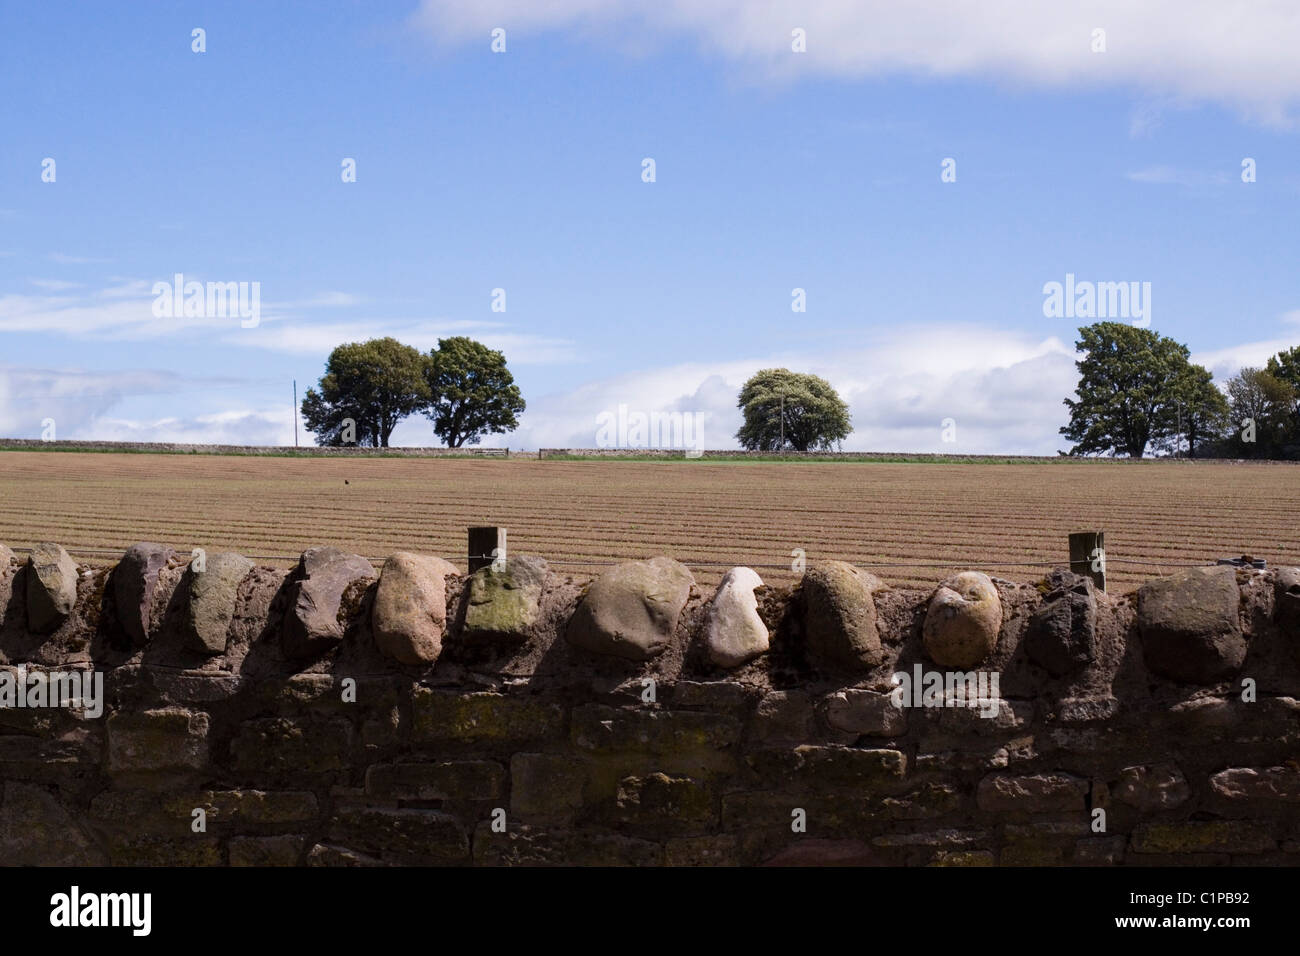 Scotland, Fife, trees, ploughed field and stone wall - Stock Image